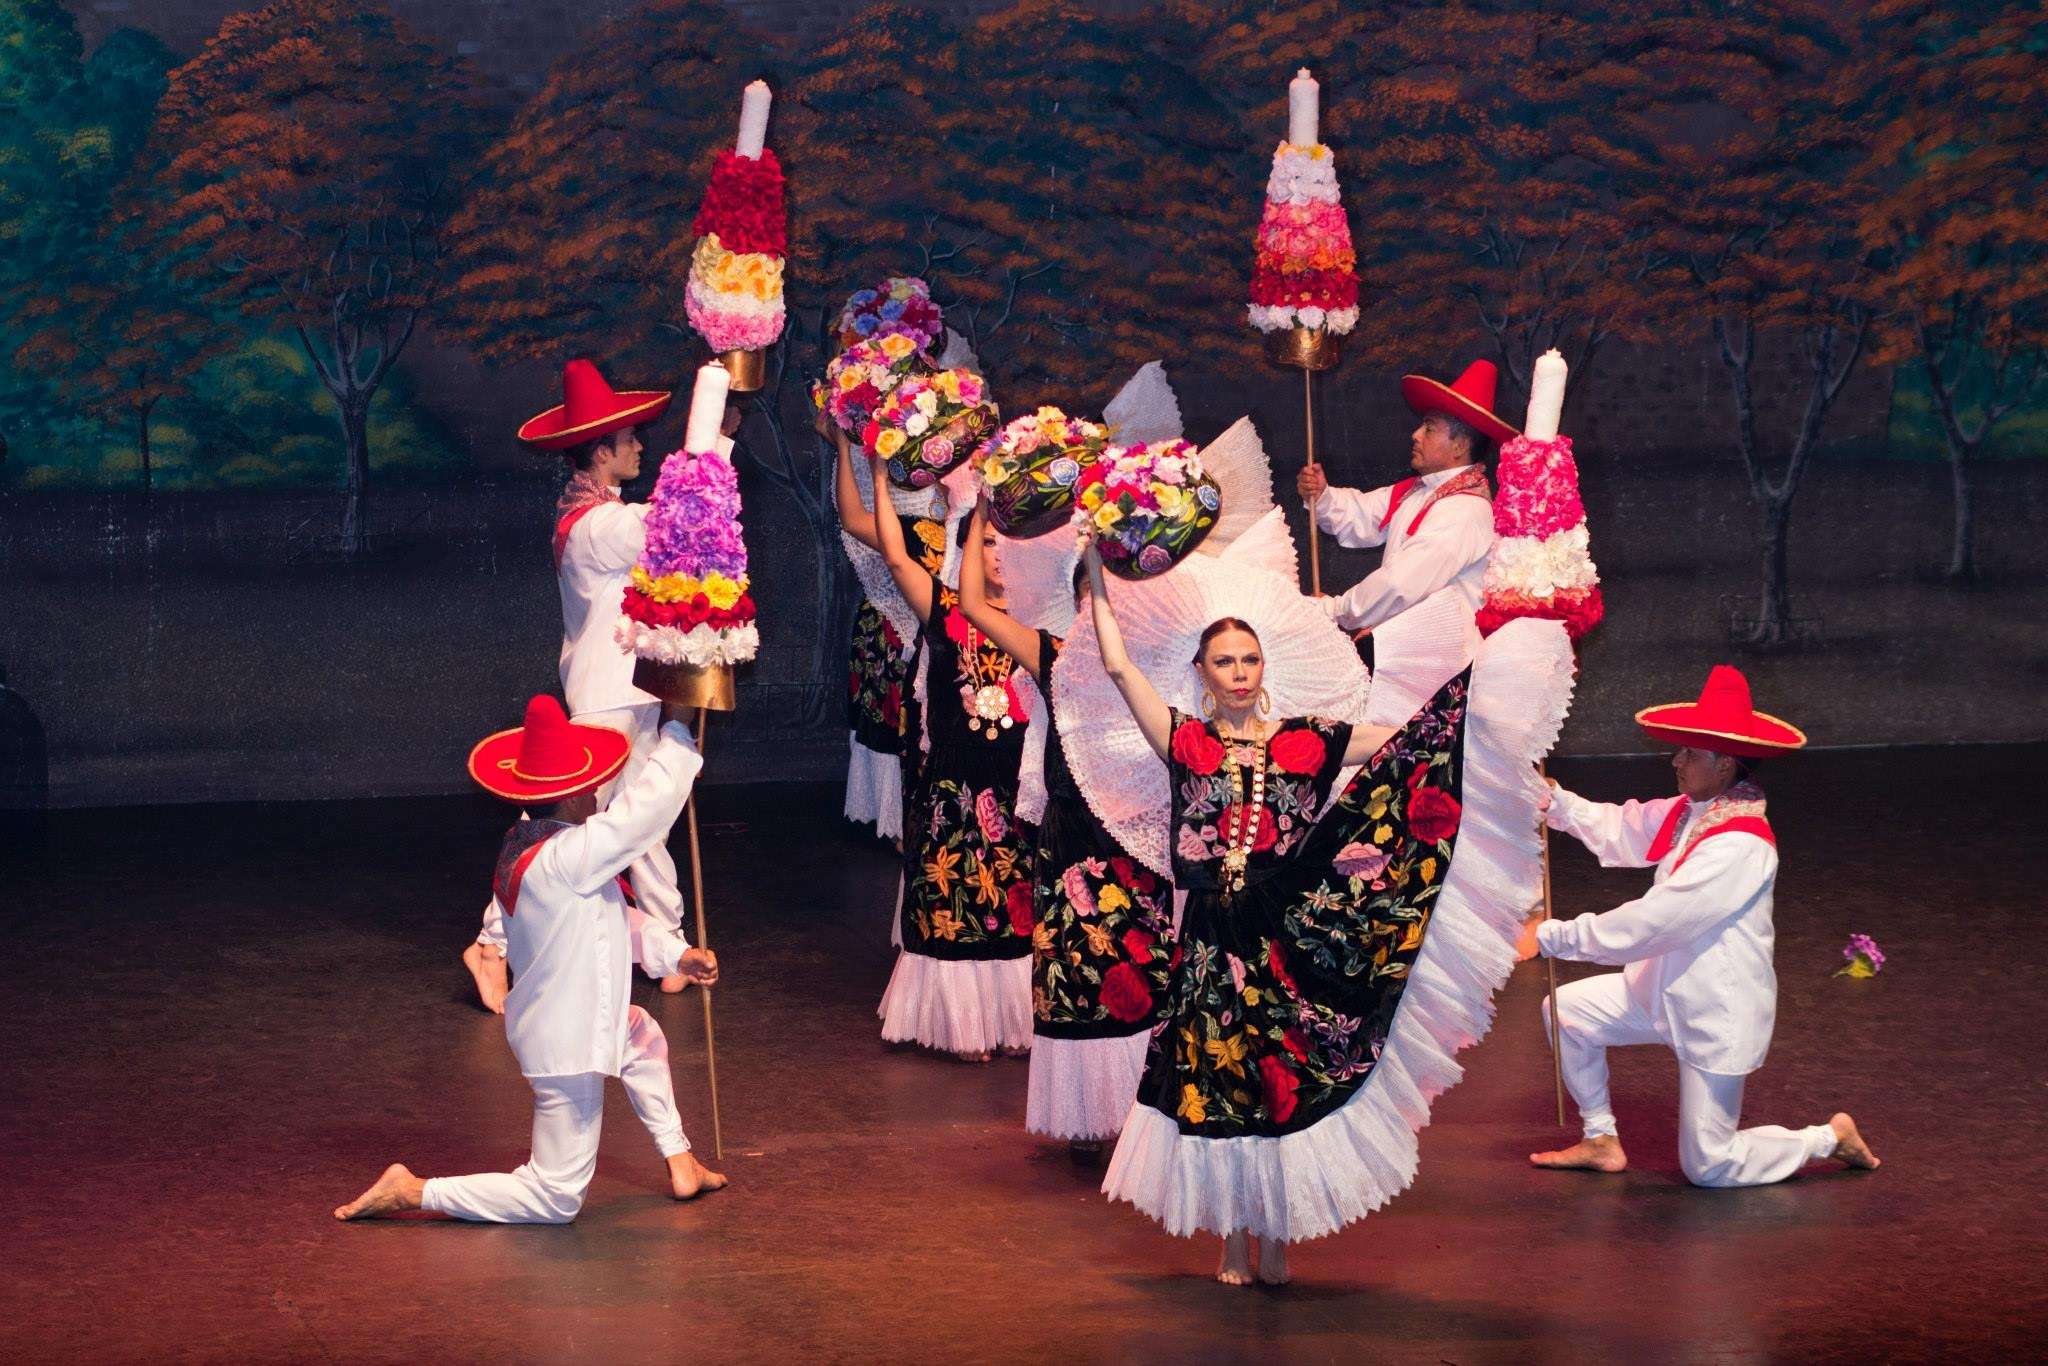 Exploring Mexico Through Dance